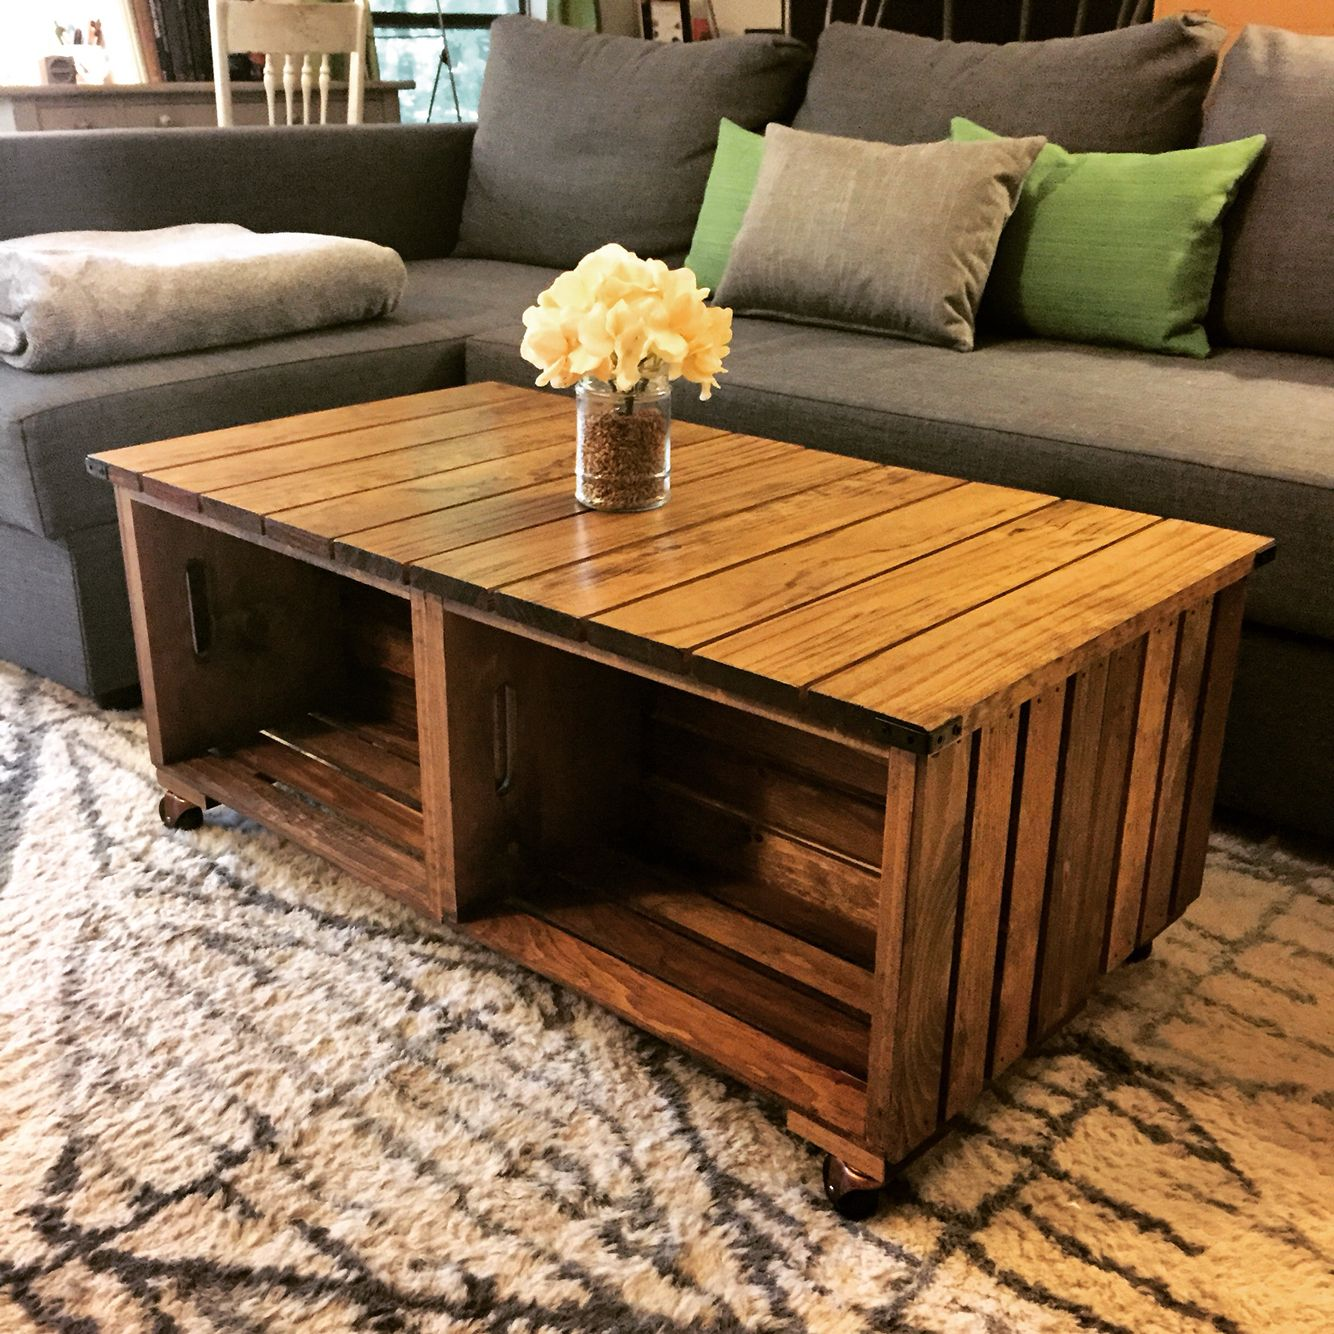 Our DIY Wood Crate Coffee Table! How We Did It: We Used 4 Wood Crates From  A Craft Store And Some Good 1x4s From The Hardware Store.